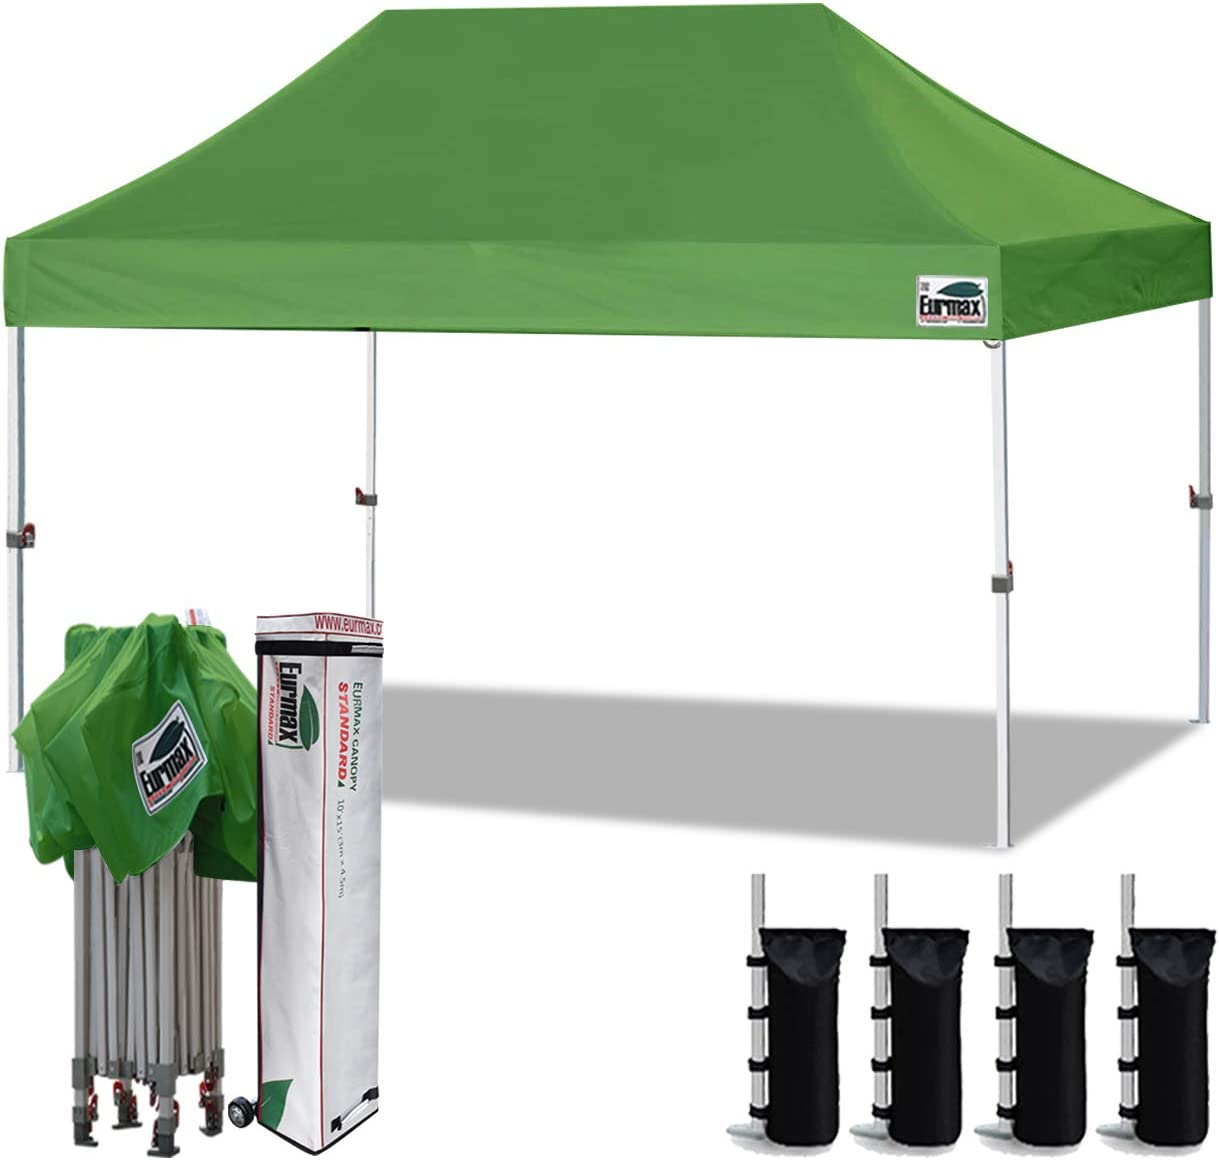 Cocoa Eurmax 10x10 Ez Pop Up Canopy Tent Commercial Instant Canopies with Heavy Duty Roller Bag,Bonus 4 Sand Weights Bags